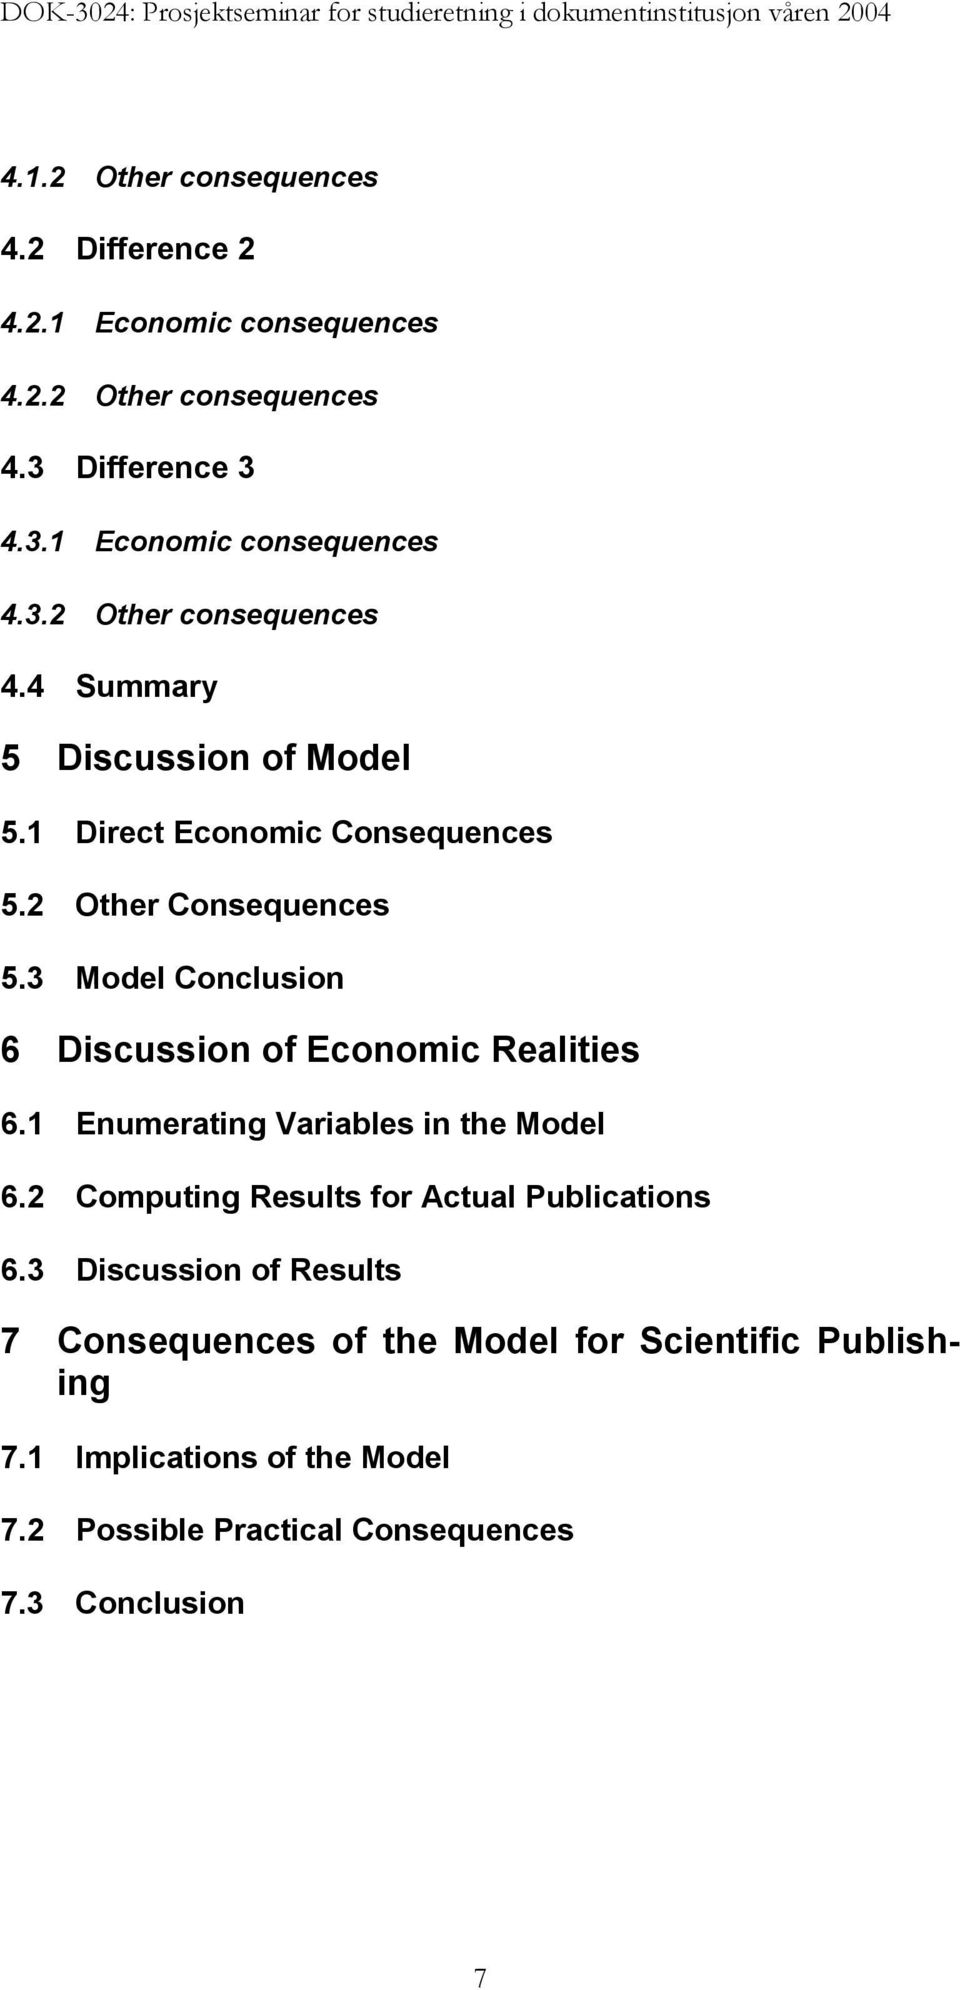 3 Model Conclusion 6 Discussion of Economic Realities 6.1 Enumerating Variables in the Model 6.2 Computing Results for Actual Publications 6.